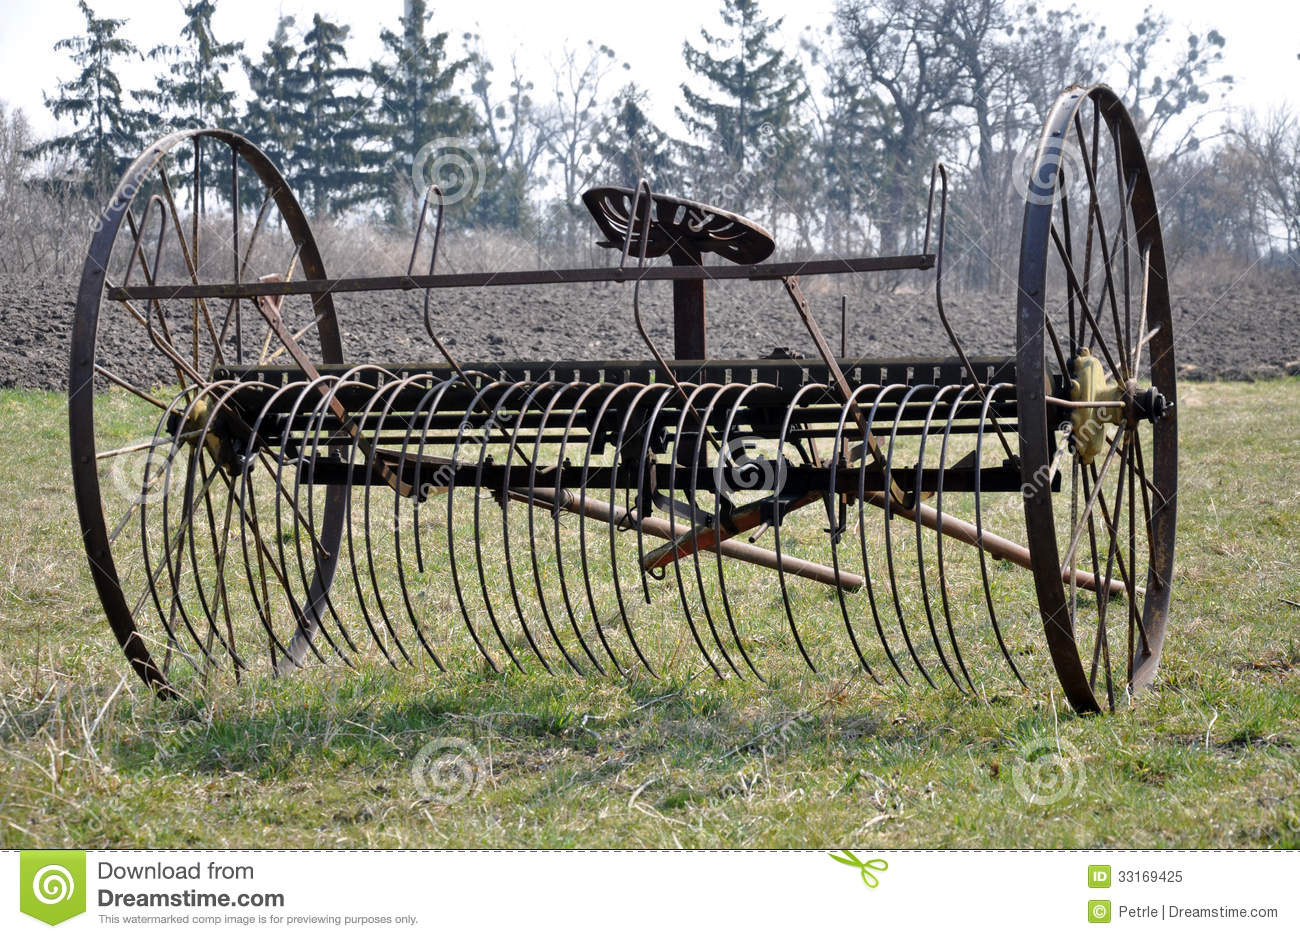 3 540 Old Farm Plow Photos Free Royalty Free Stock Photos From Dreamstime